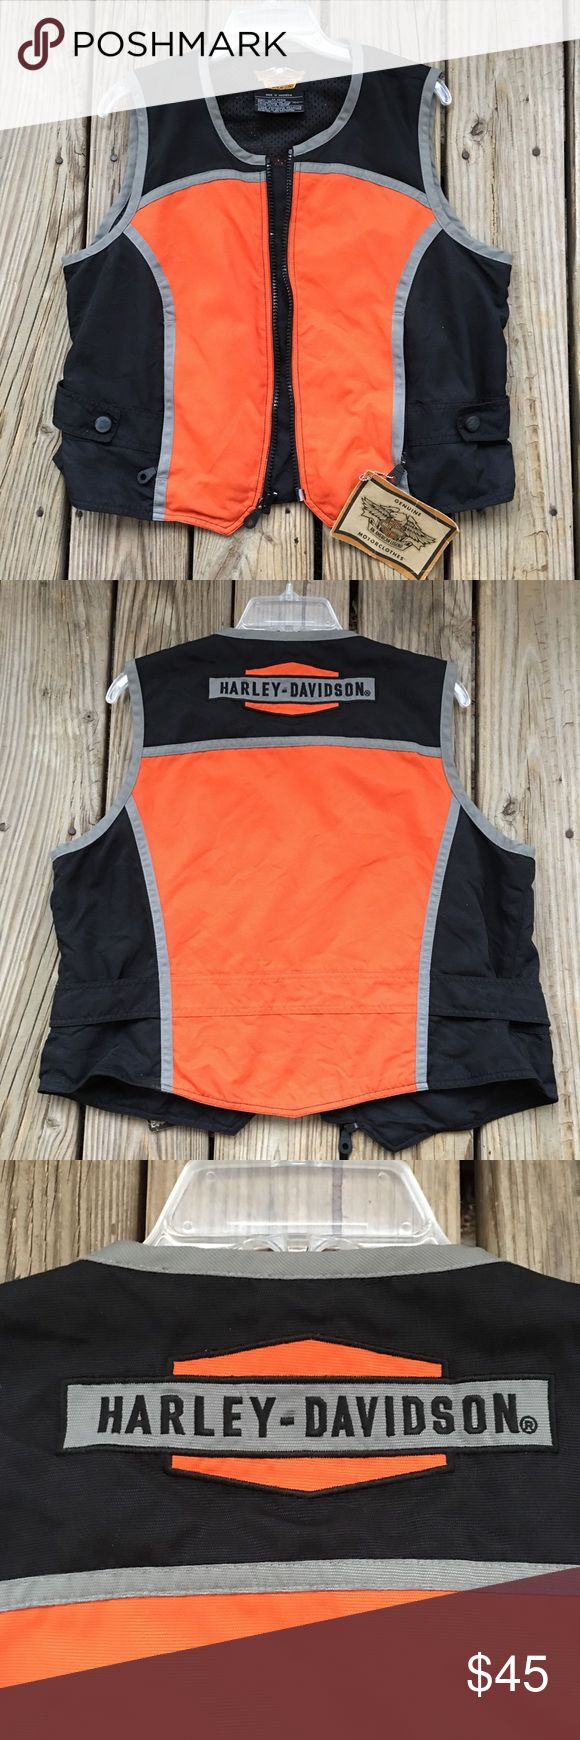 Harley - Davidson Vest Harley - Davidson Vest Women's Size X Large colors black and orange. Measurements are approximate , bust laying is 22 inches , and is 22 inches. New With Tags Harley-Davidson Jackets & Coats Vests